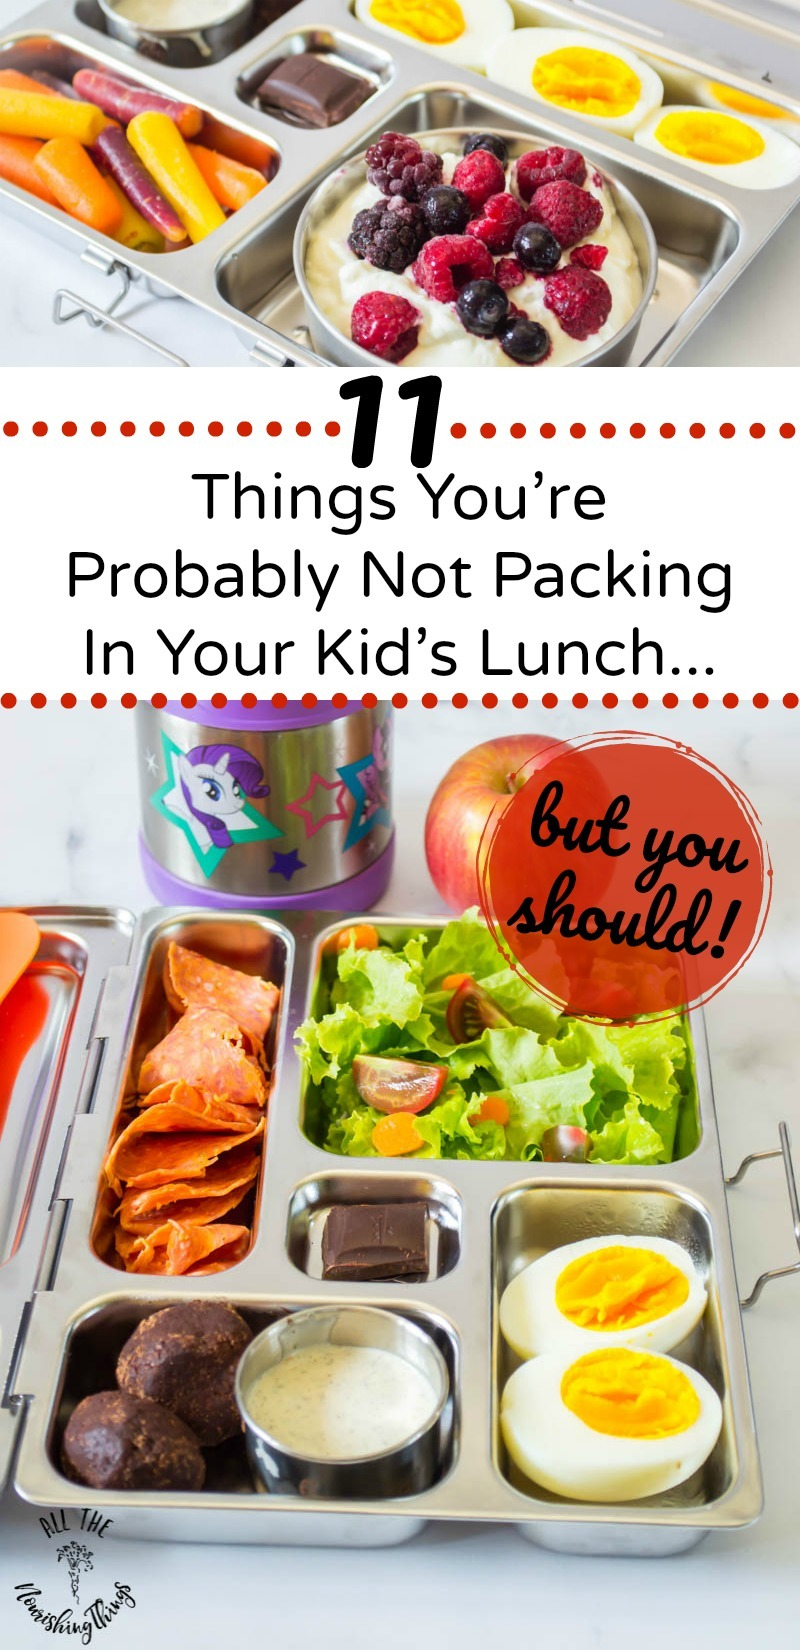 planetbox bento box healthy school lunch for kids with text overlay